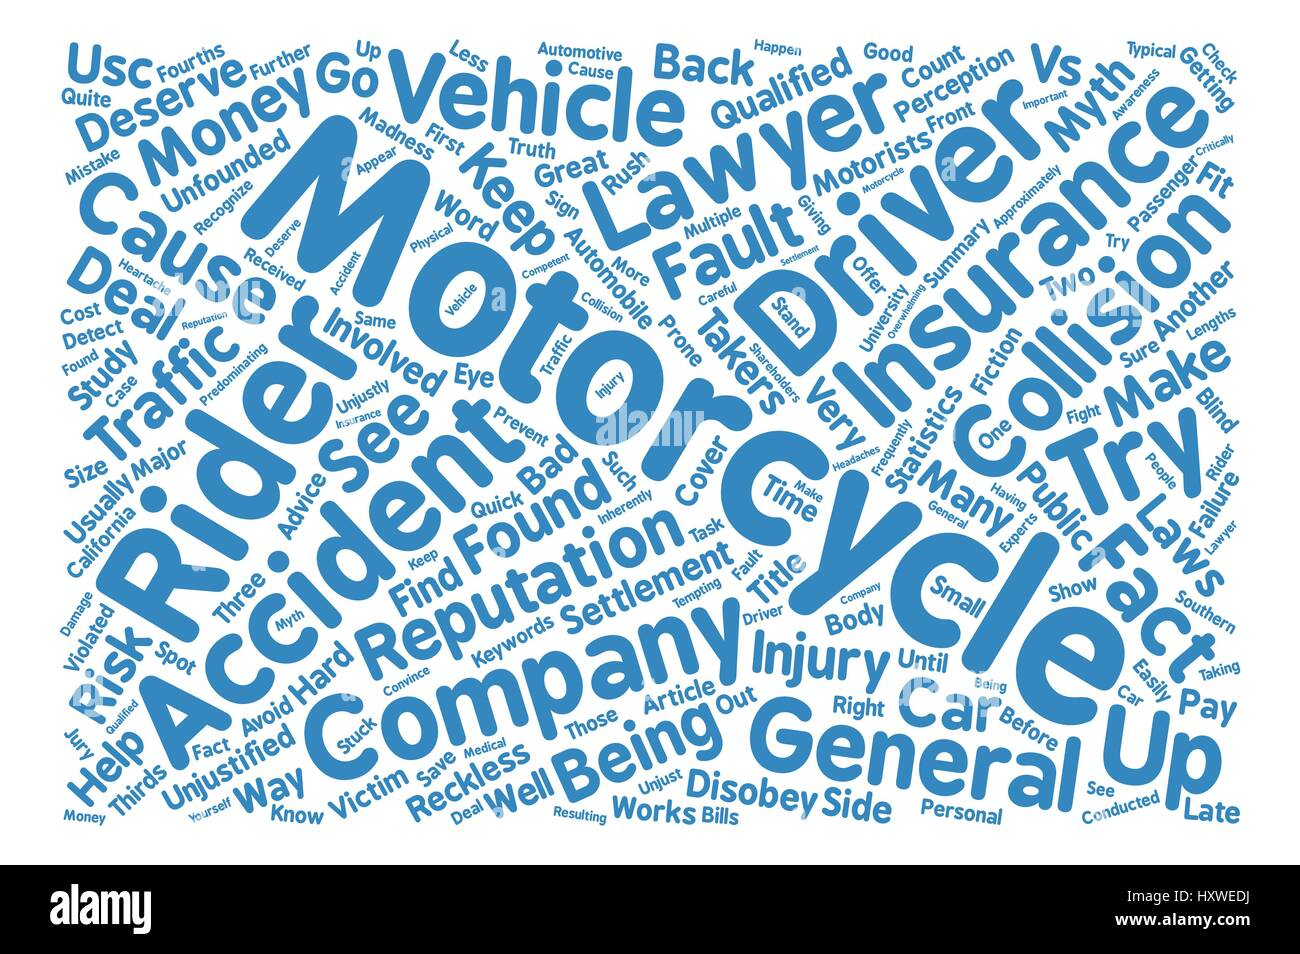 Motorcycle Vs Car Myth or Madness text background word cloud concept - Stock Image